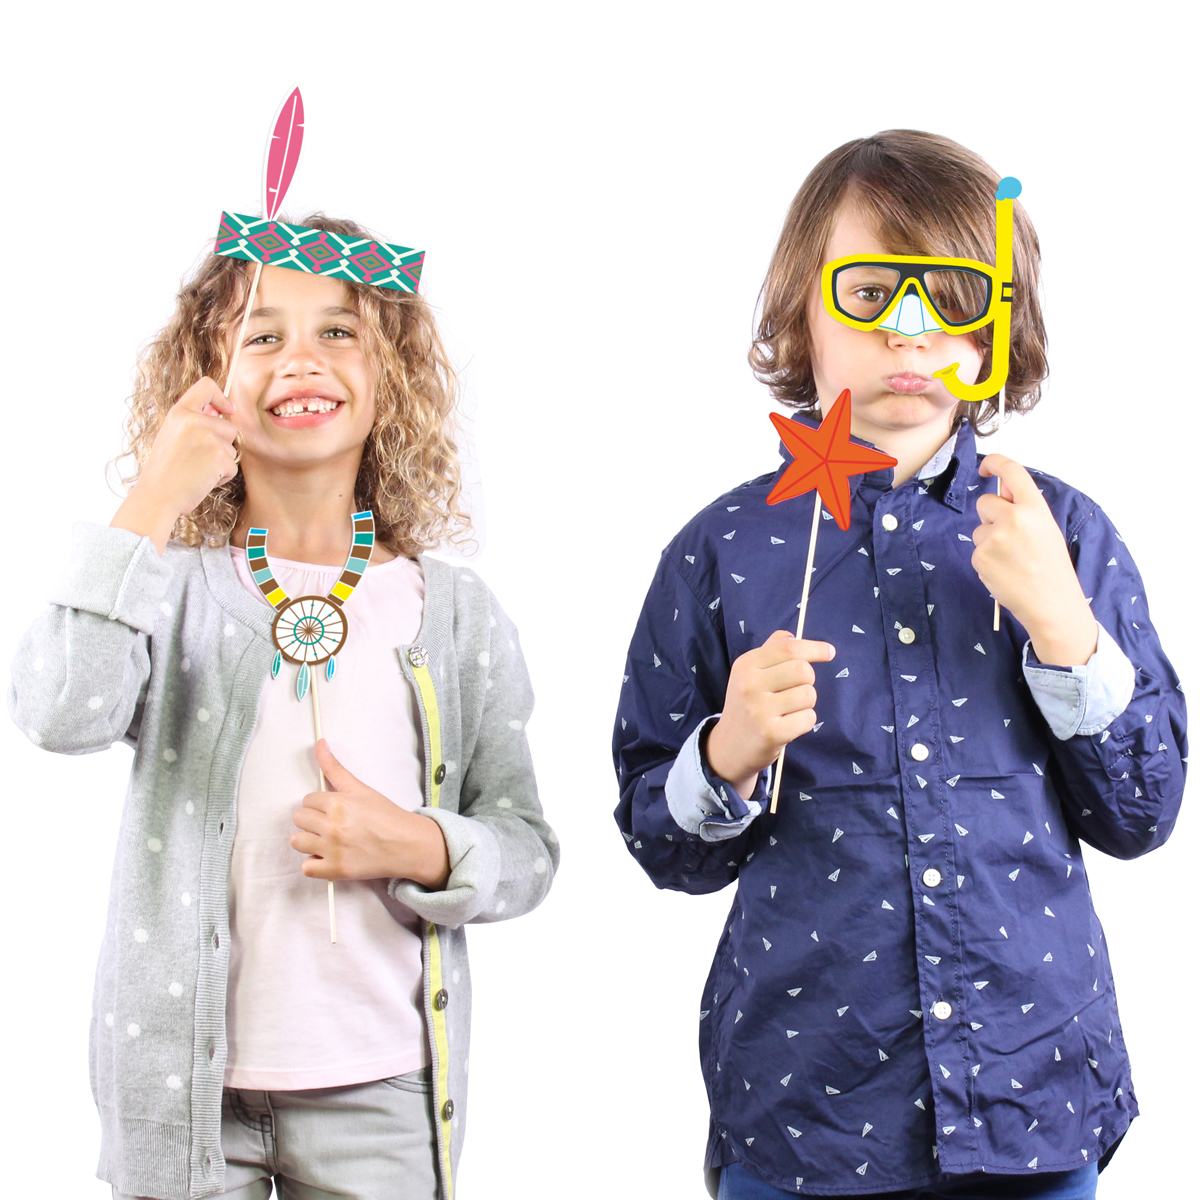 Mr.Wonderful photo booth infantil kids